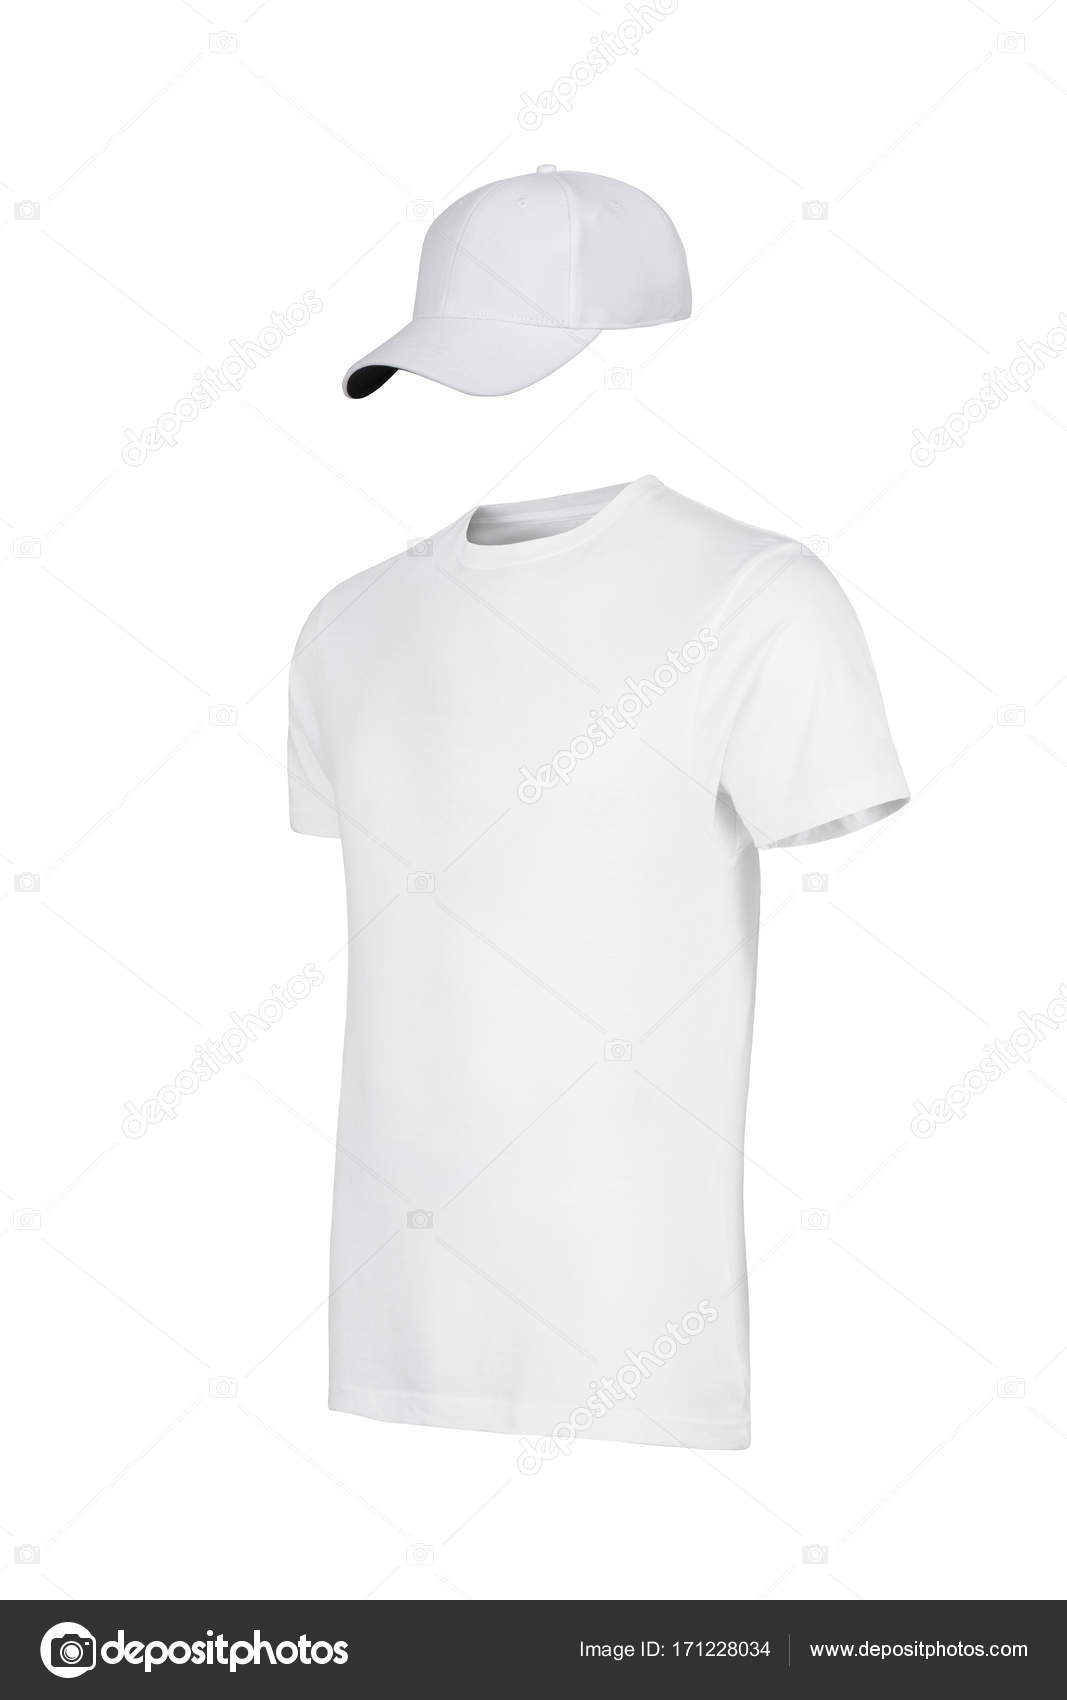 Unisex White T Shirt Template Stock Photo Inginsh 171228034